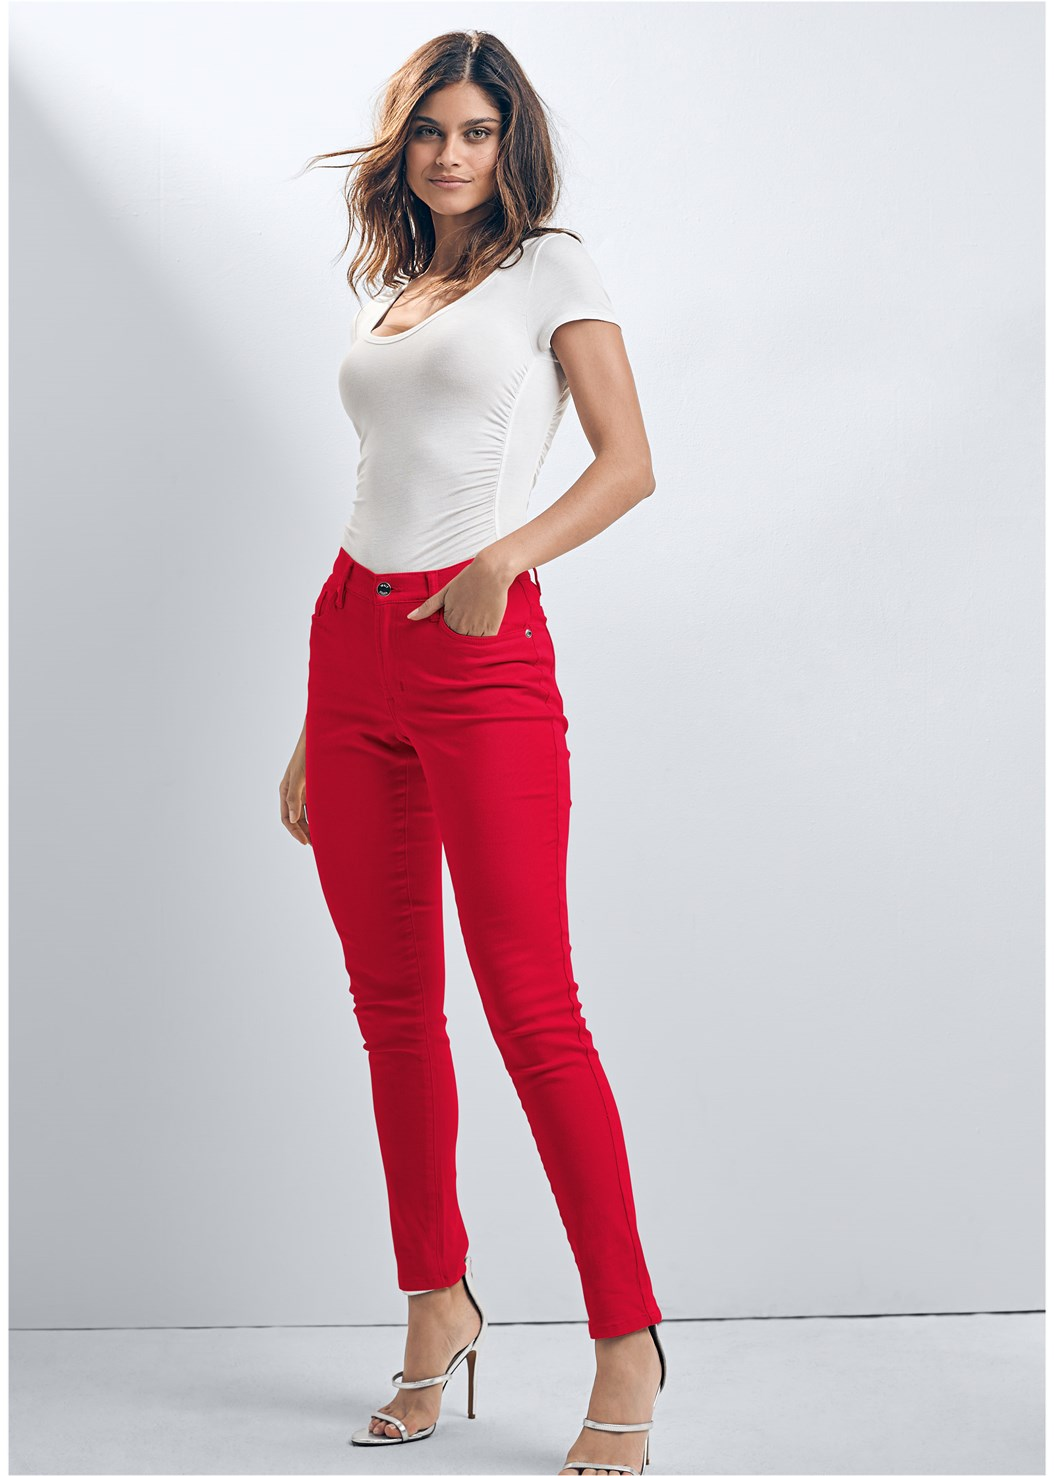 Mid Rise Color Skinny Jeans,Ruched Detail Top,Stretch Hipster 5Pk,High Heel Strappy Sandals,Color Block Mules